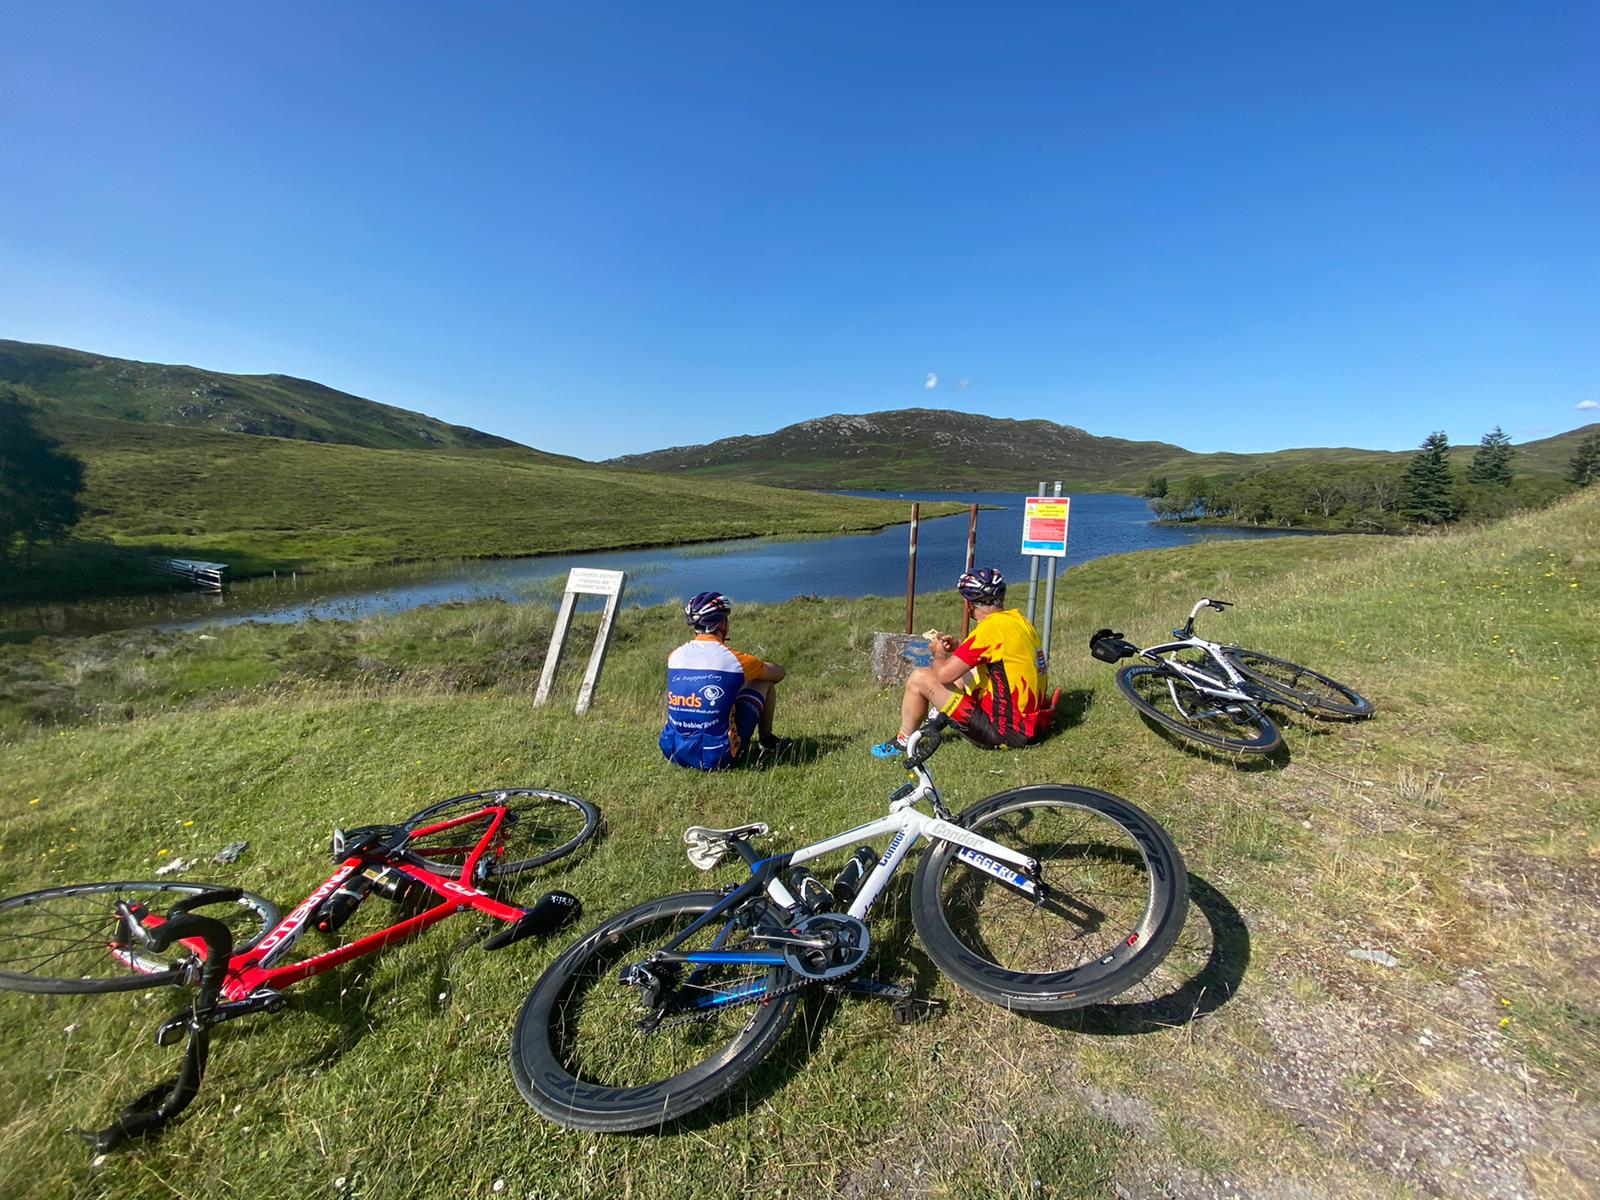 Day 12 - Fort William to Inverness